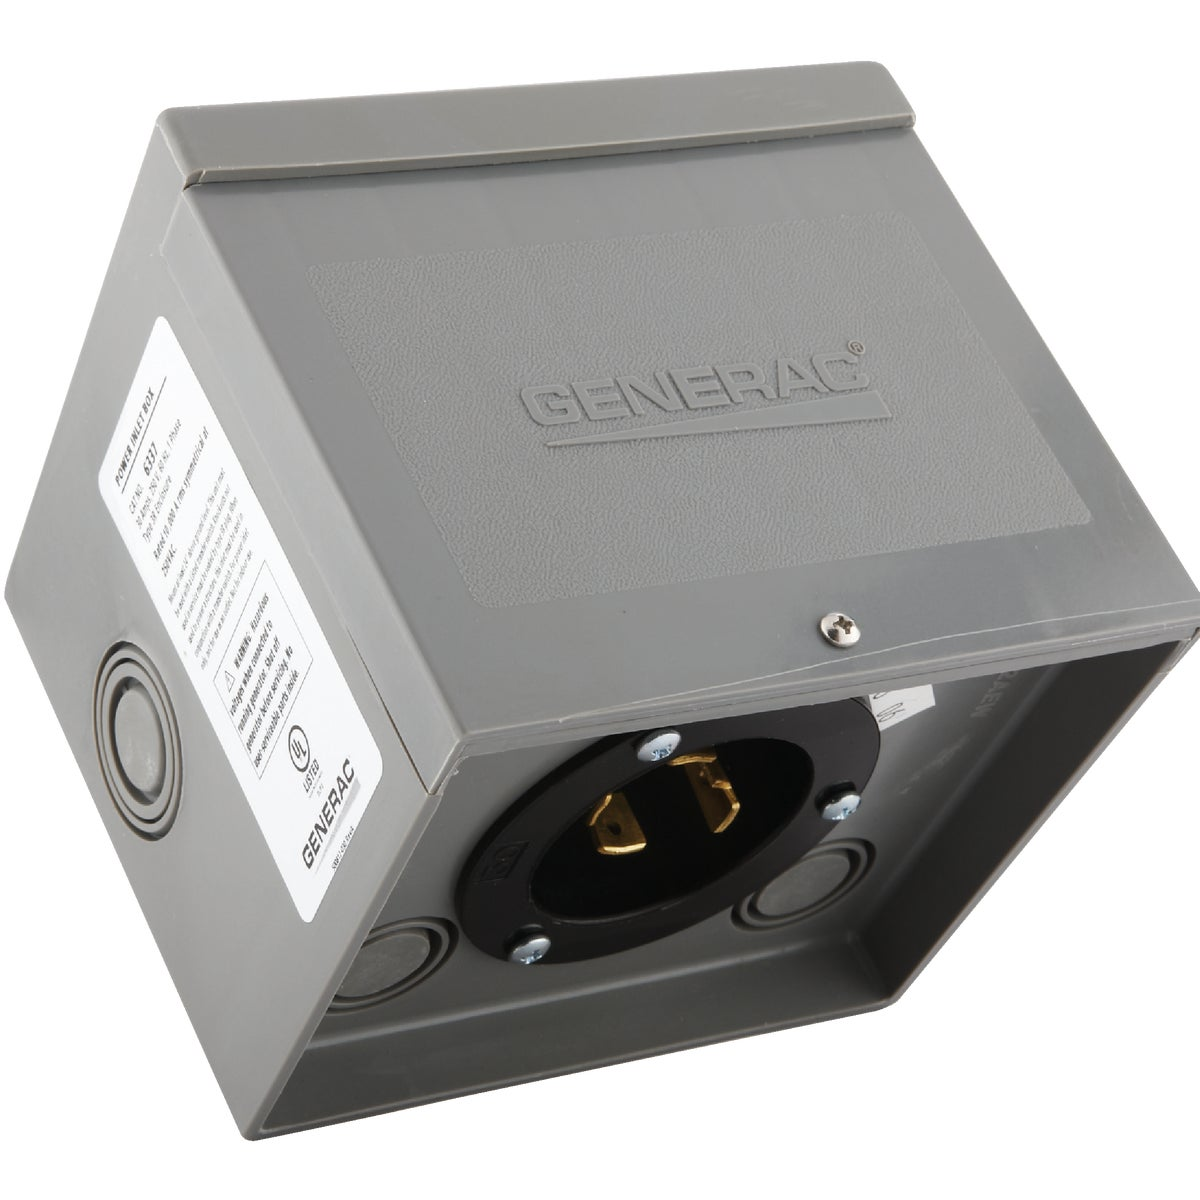 30A NM POWER INLET BOX - 6337 by Generac Power System